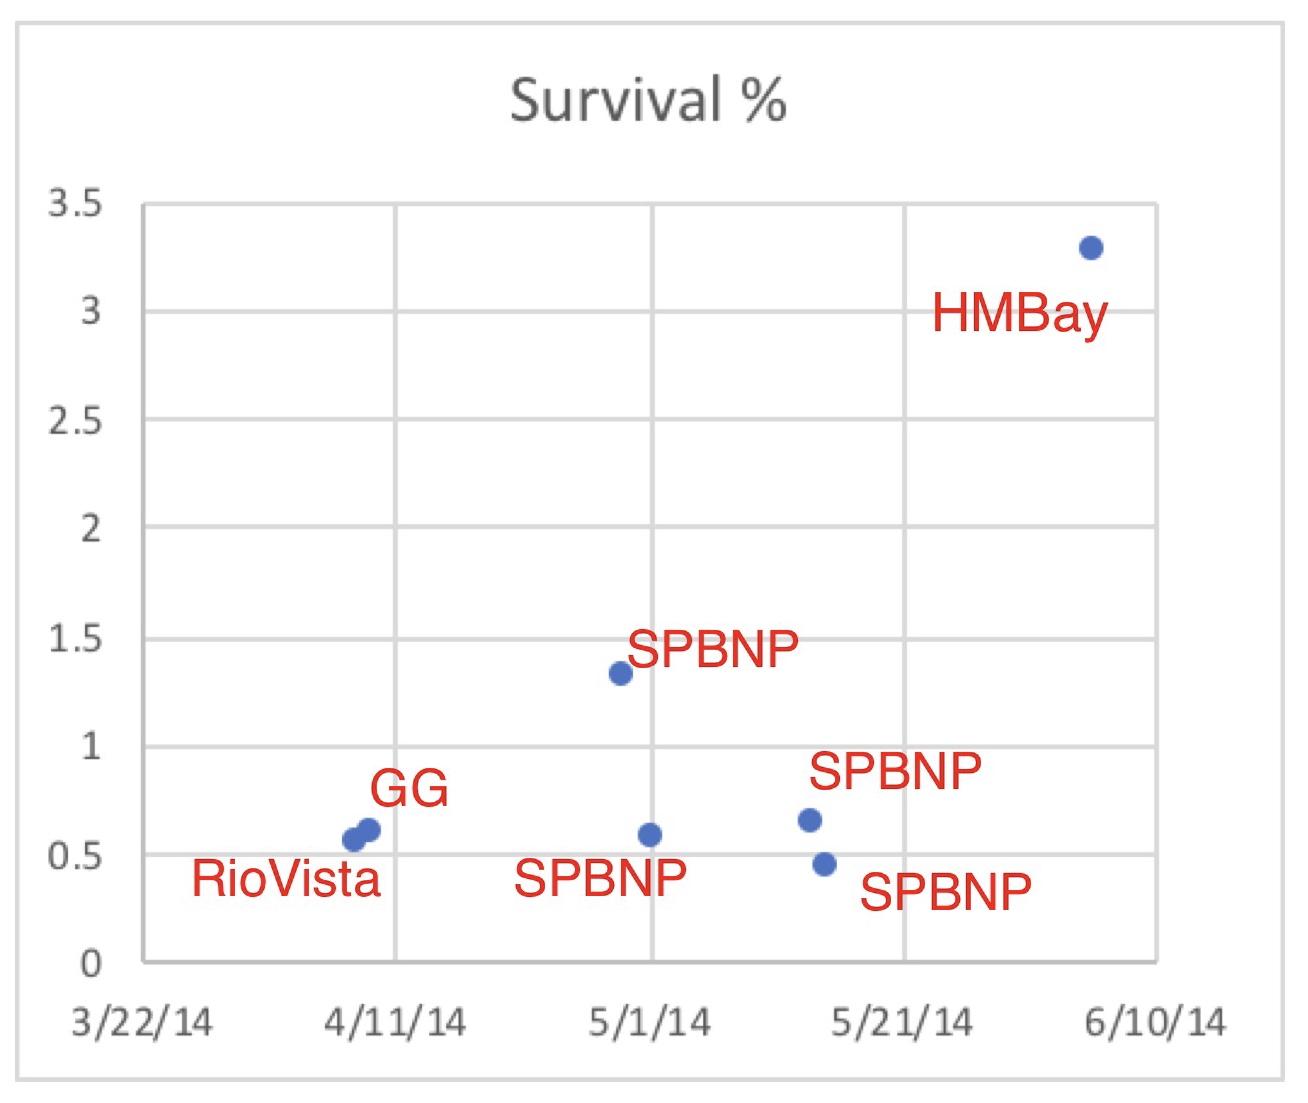 Figure 7. Survival rates for brood year 2013 Feather River Hatchery smolts released in spring 2014. GG is Golden Gate. SPBNP is San Pablo Bay net pen. Rio Vista is North Delta. HMBay is Half Moon Bay.